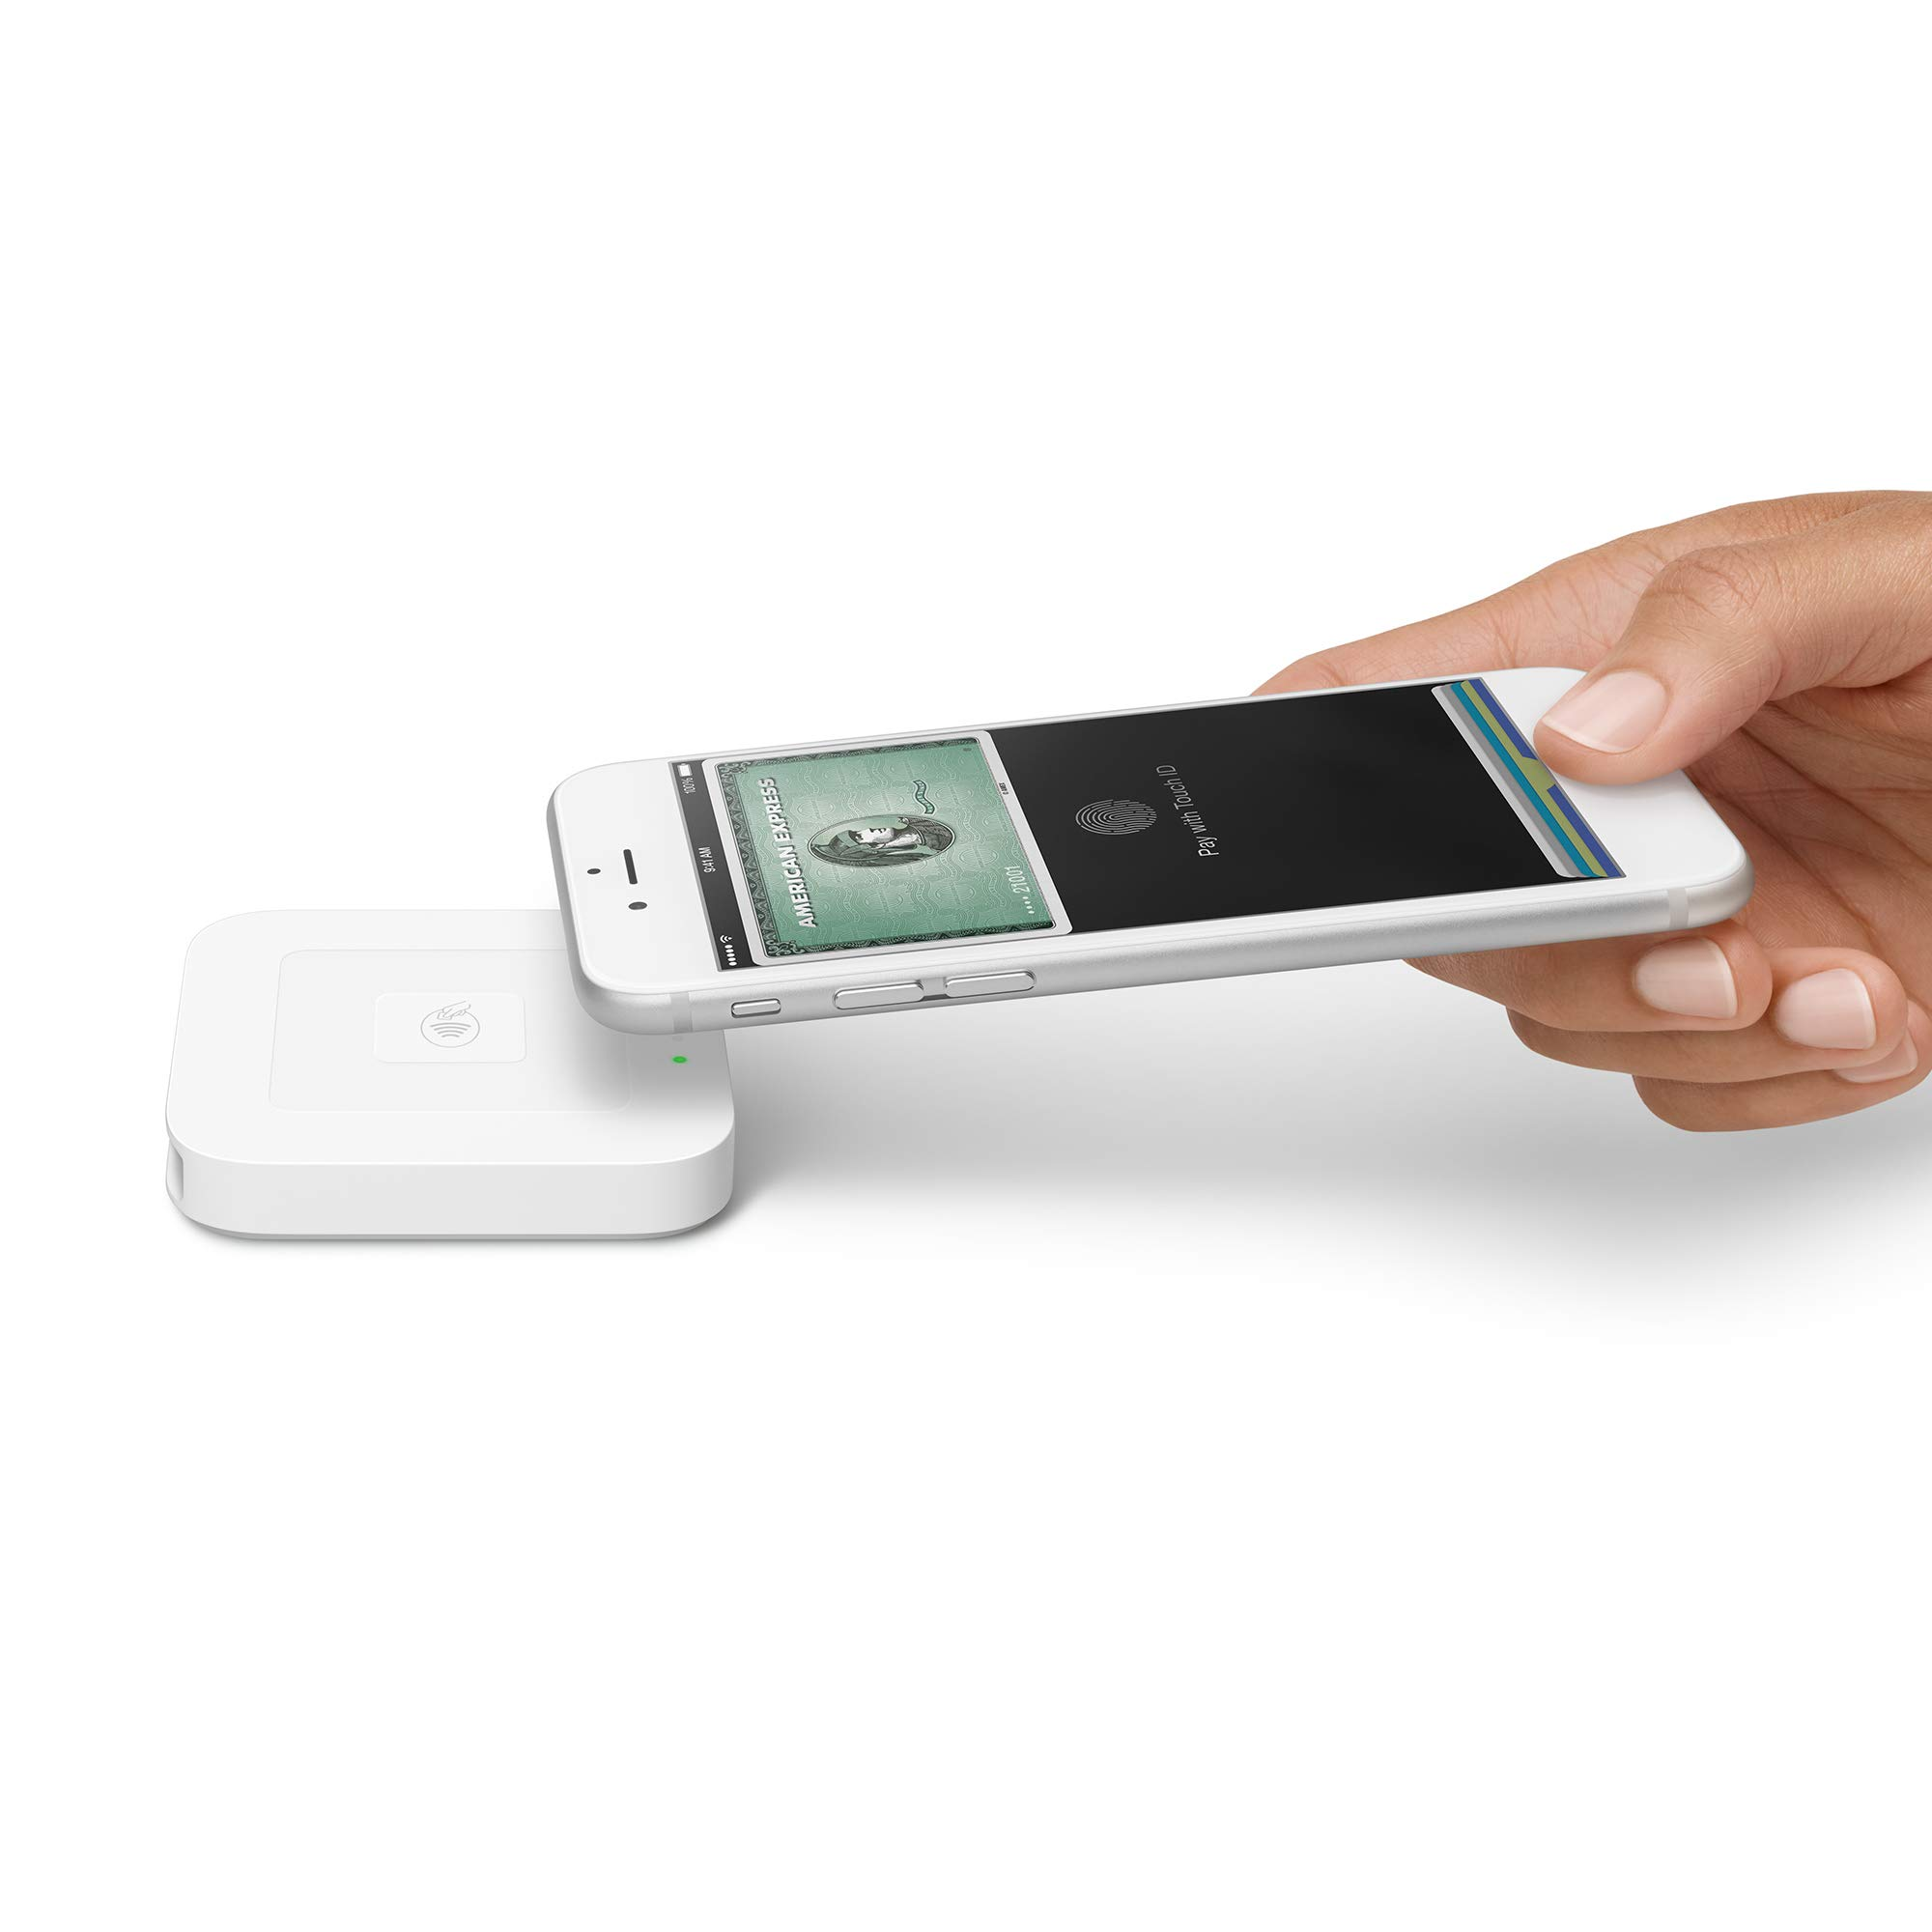 Square Dock for Square Contactless and Chip Reader White A-SKU-0120 Dock only